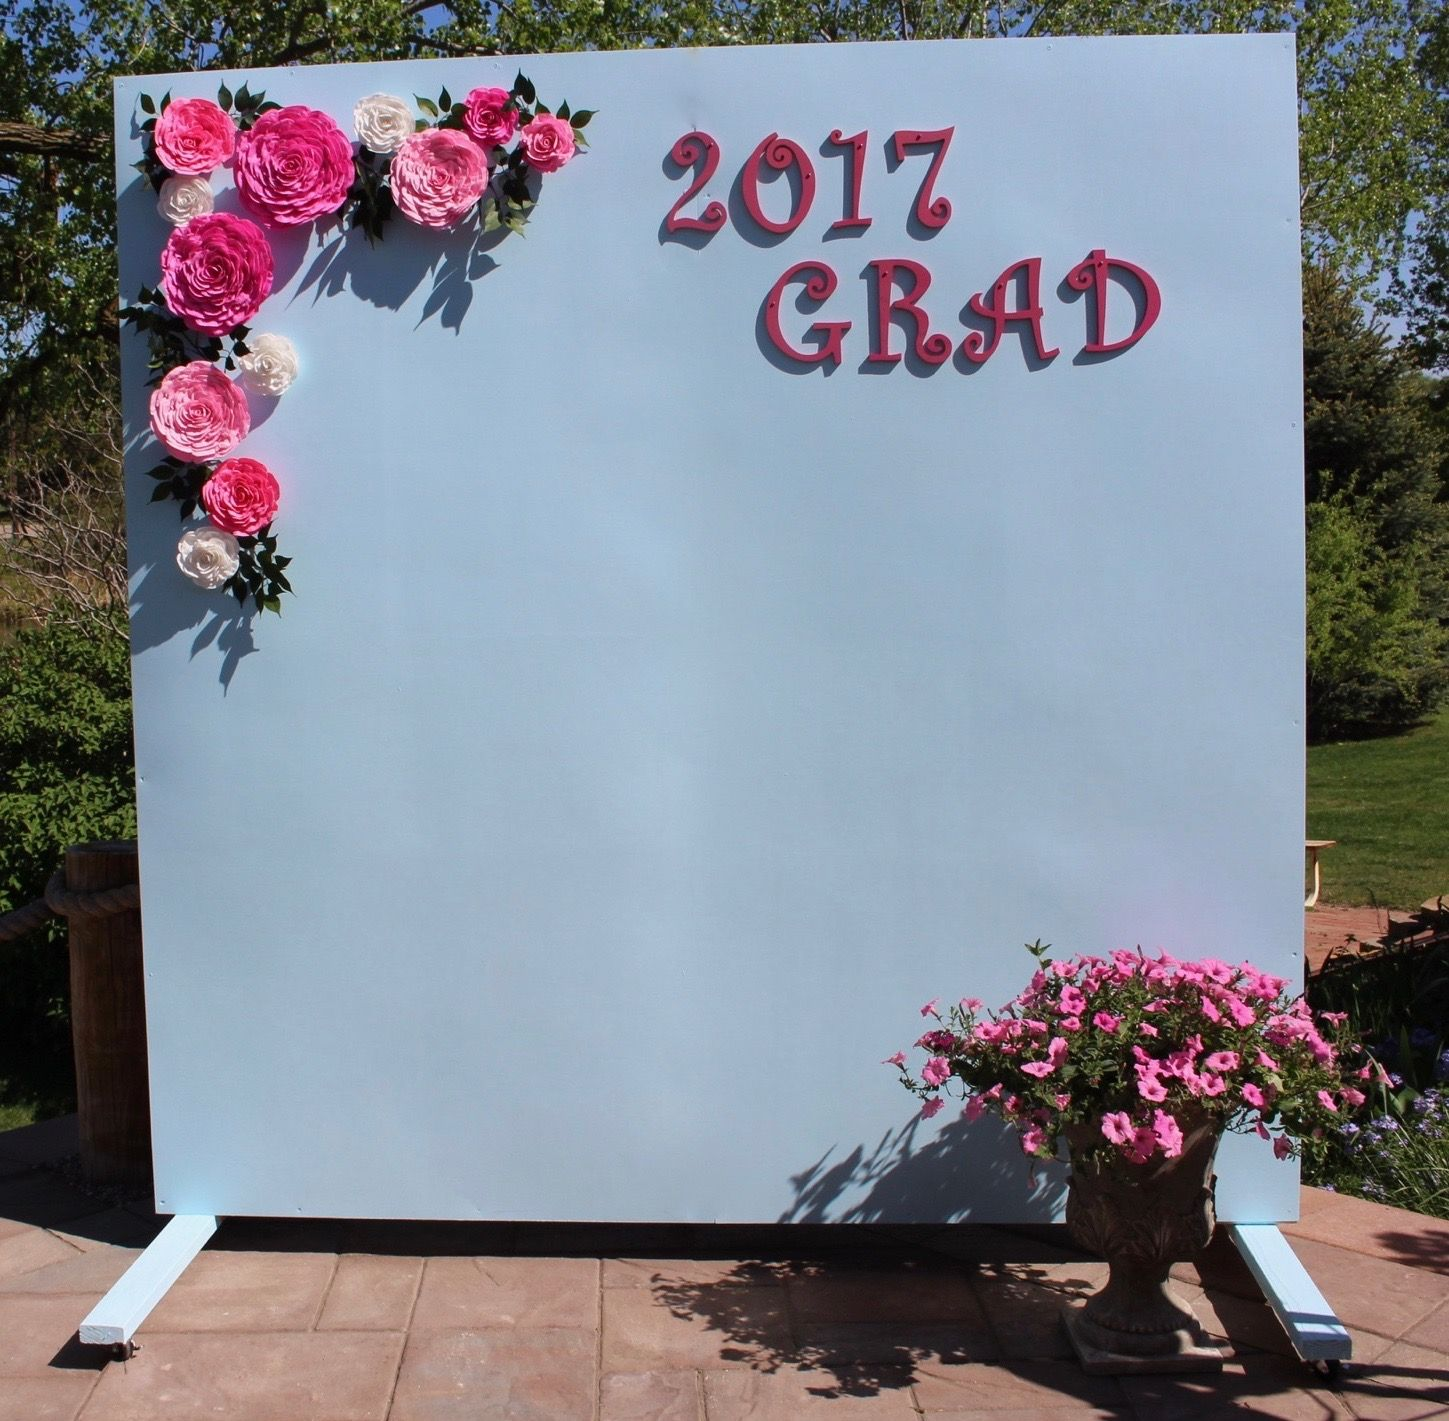 Graduation Party Backdrop Graduation Party Backdrops Graduation Party Photo Booth Diy Graduation Decorations Party